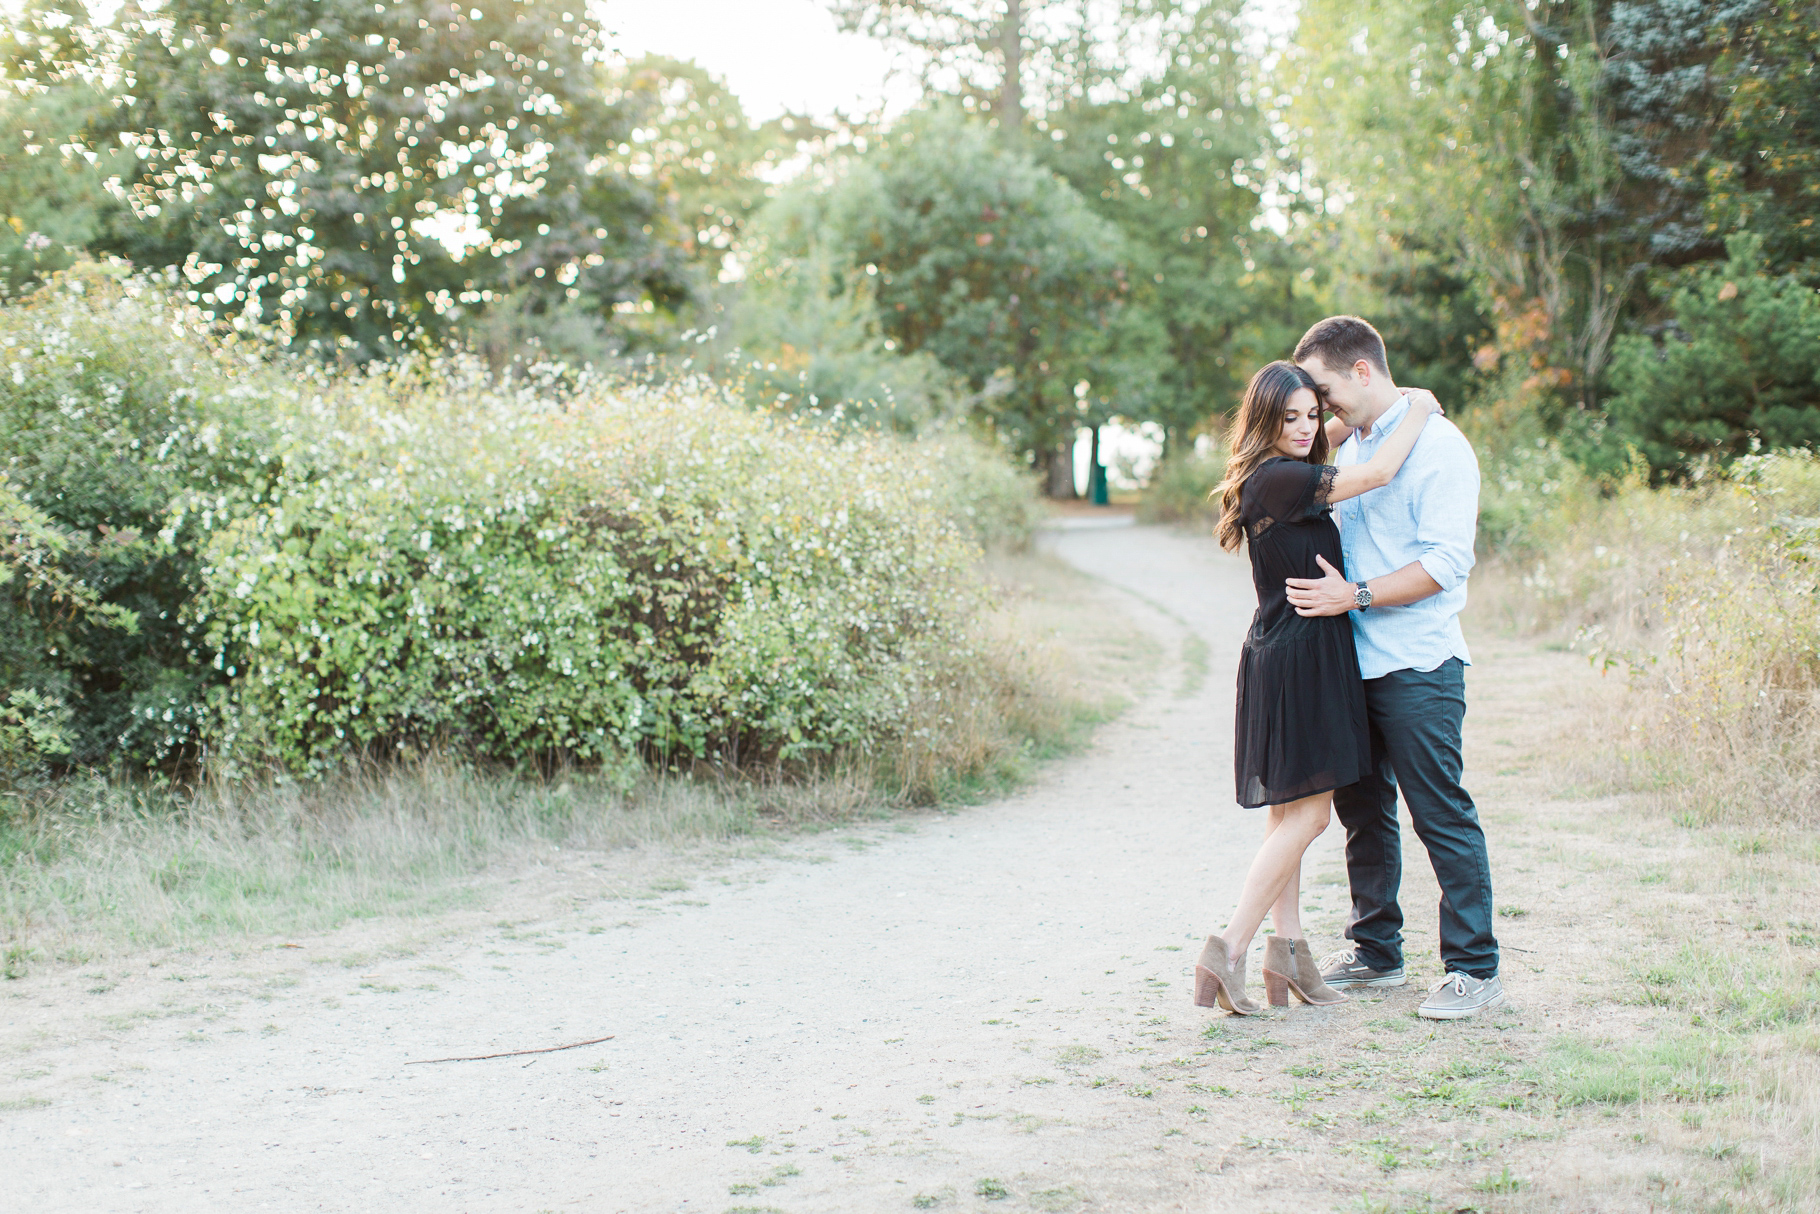 Discovery-Park-Seattle-Engagment-Photographer-Wedding-Photography-by-Betty-Elaine_0006